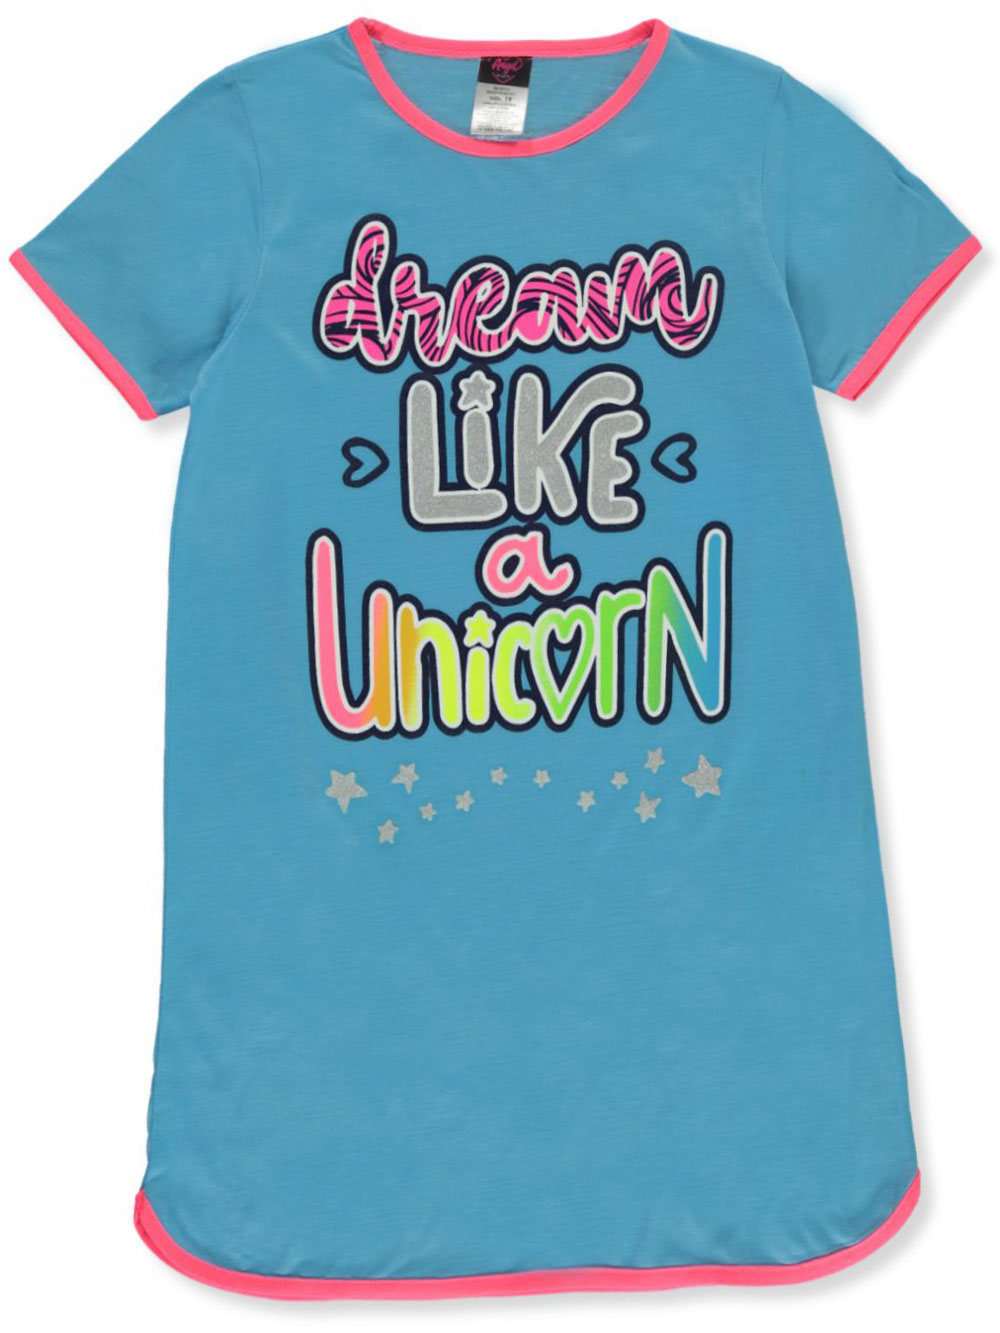 Girls Dreams Kids Clothing